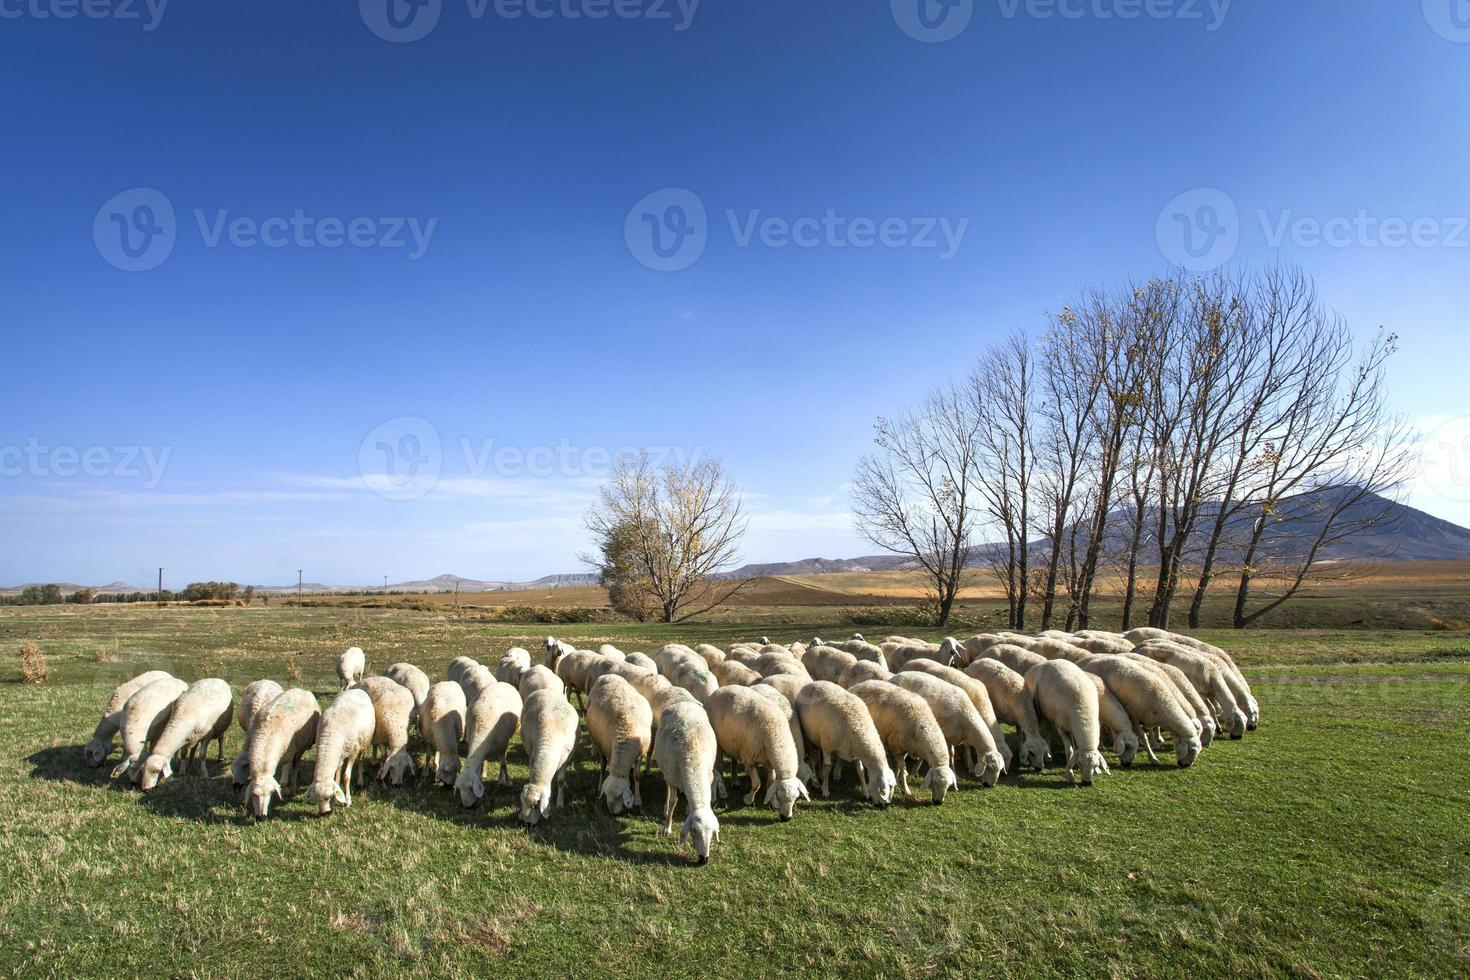 Flock of sheep on field photo